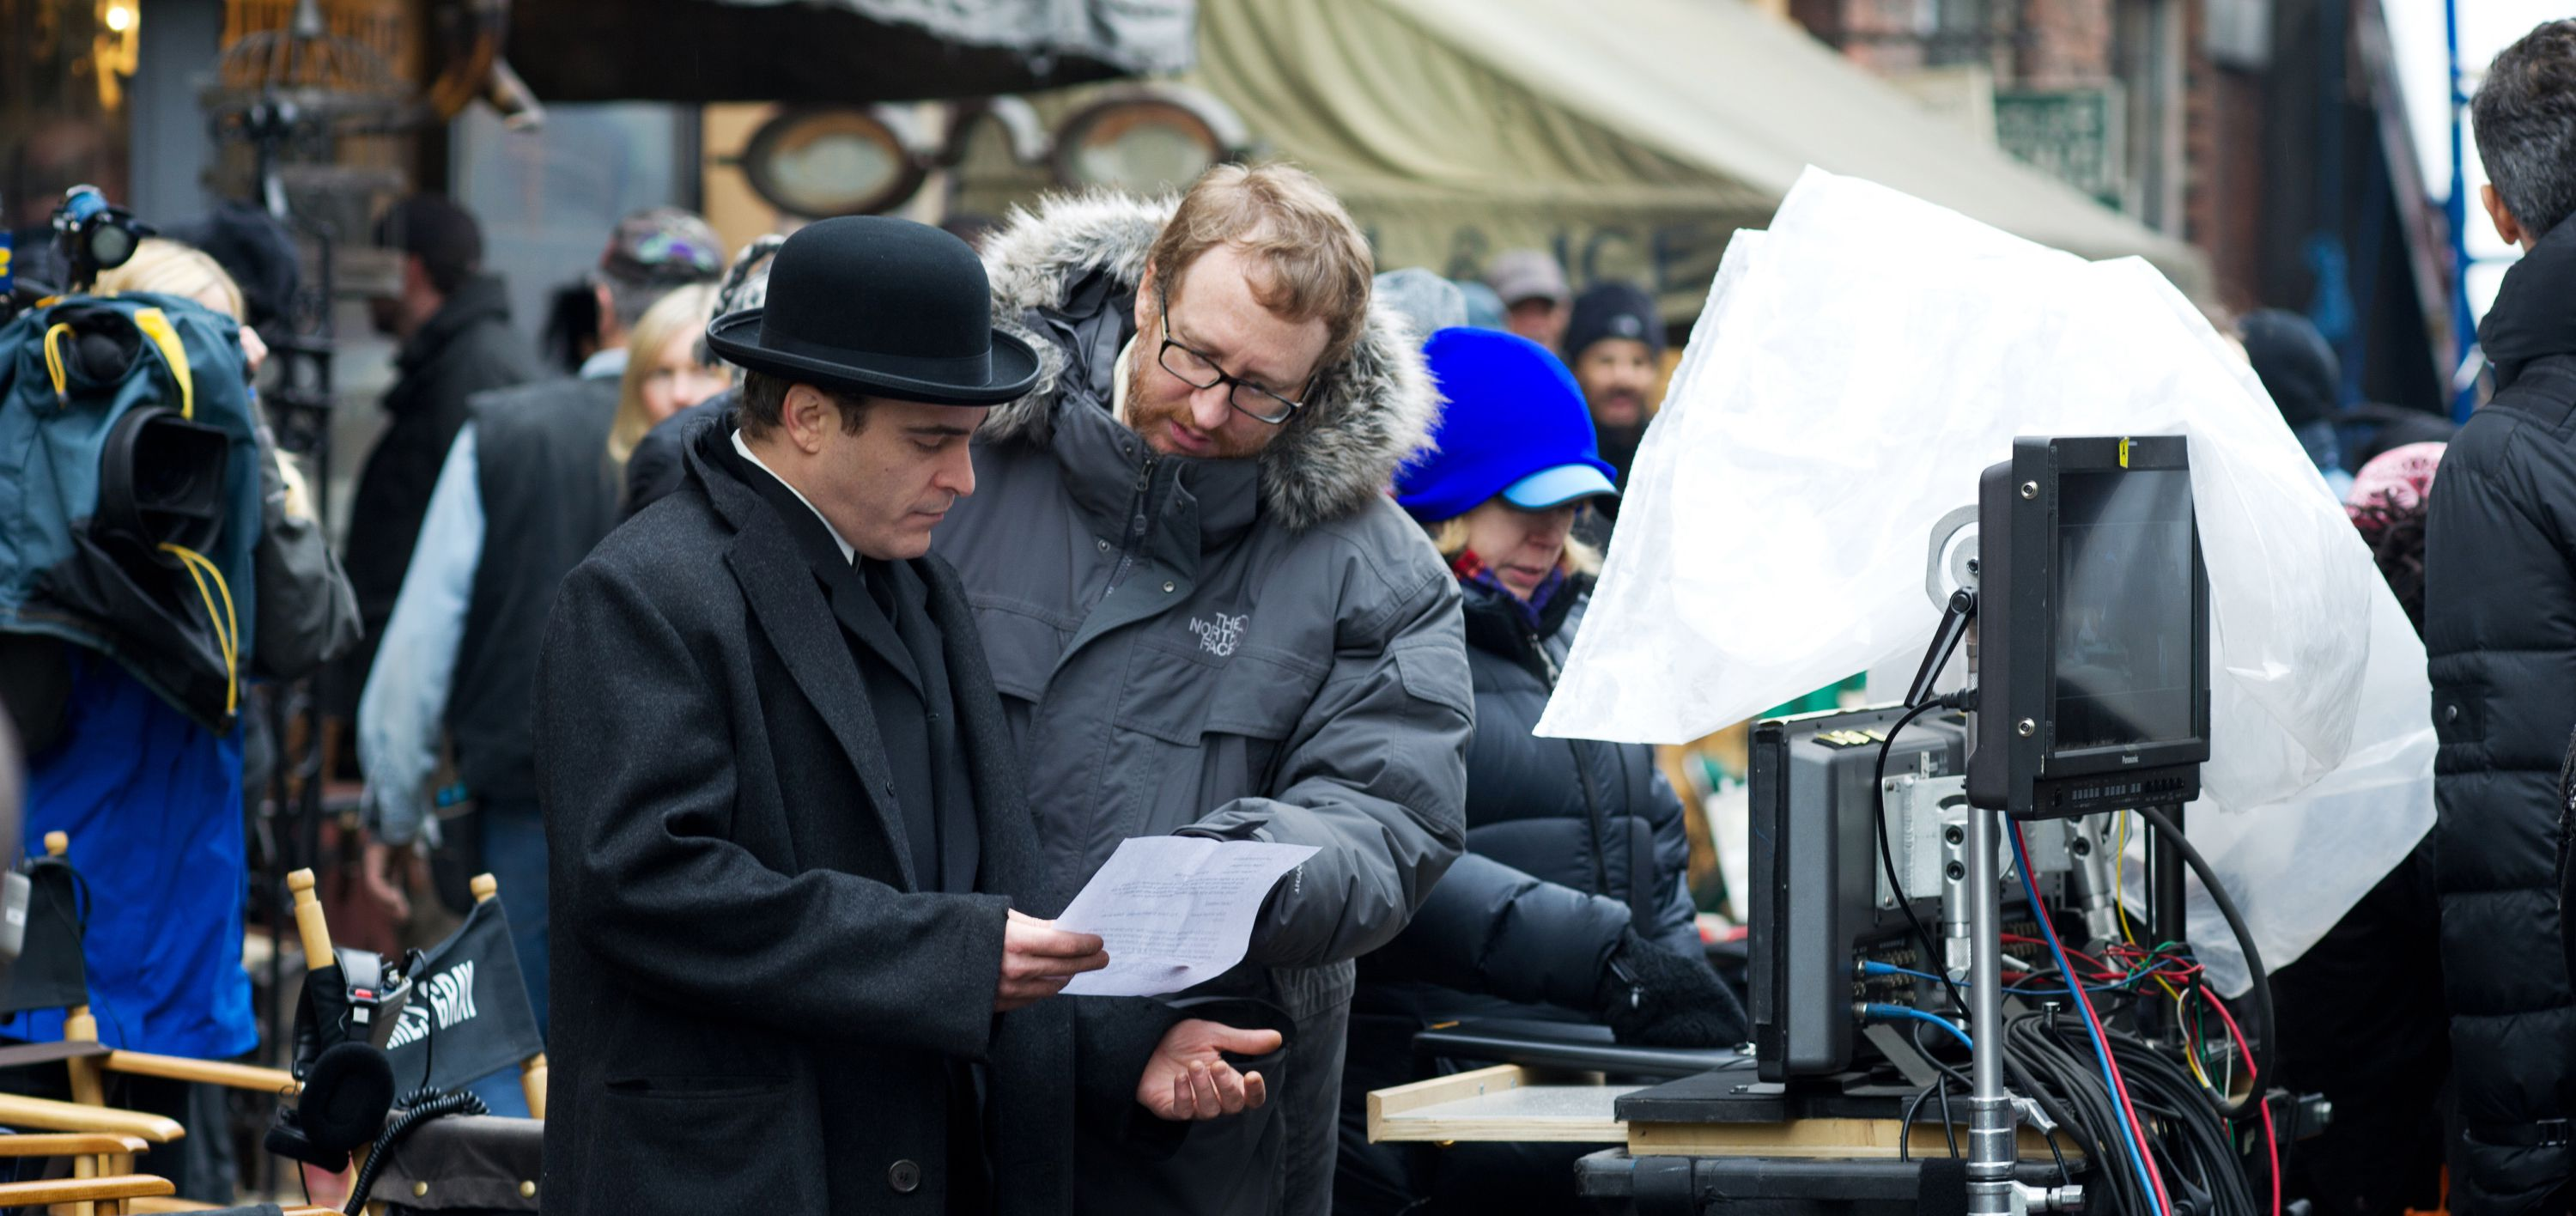 Interview: James Gray on The Immigrant, Joaquin Phoenix, and More